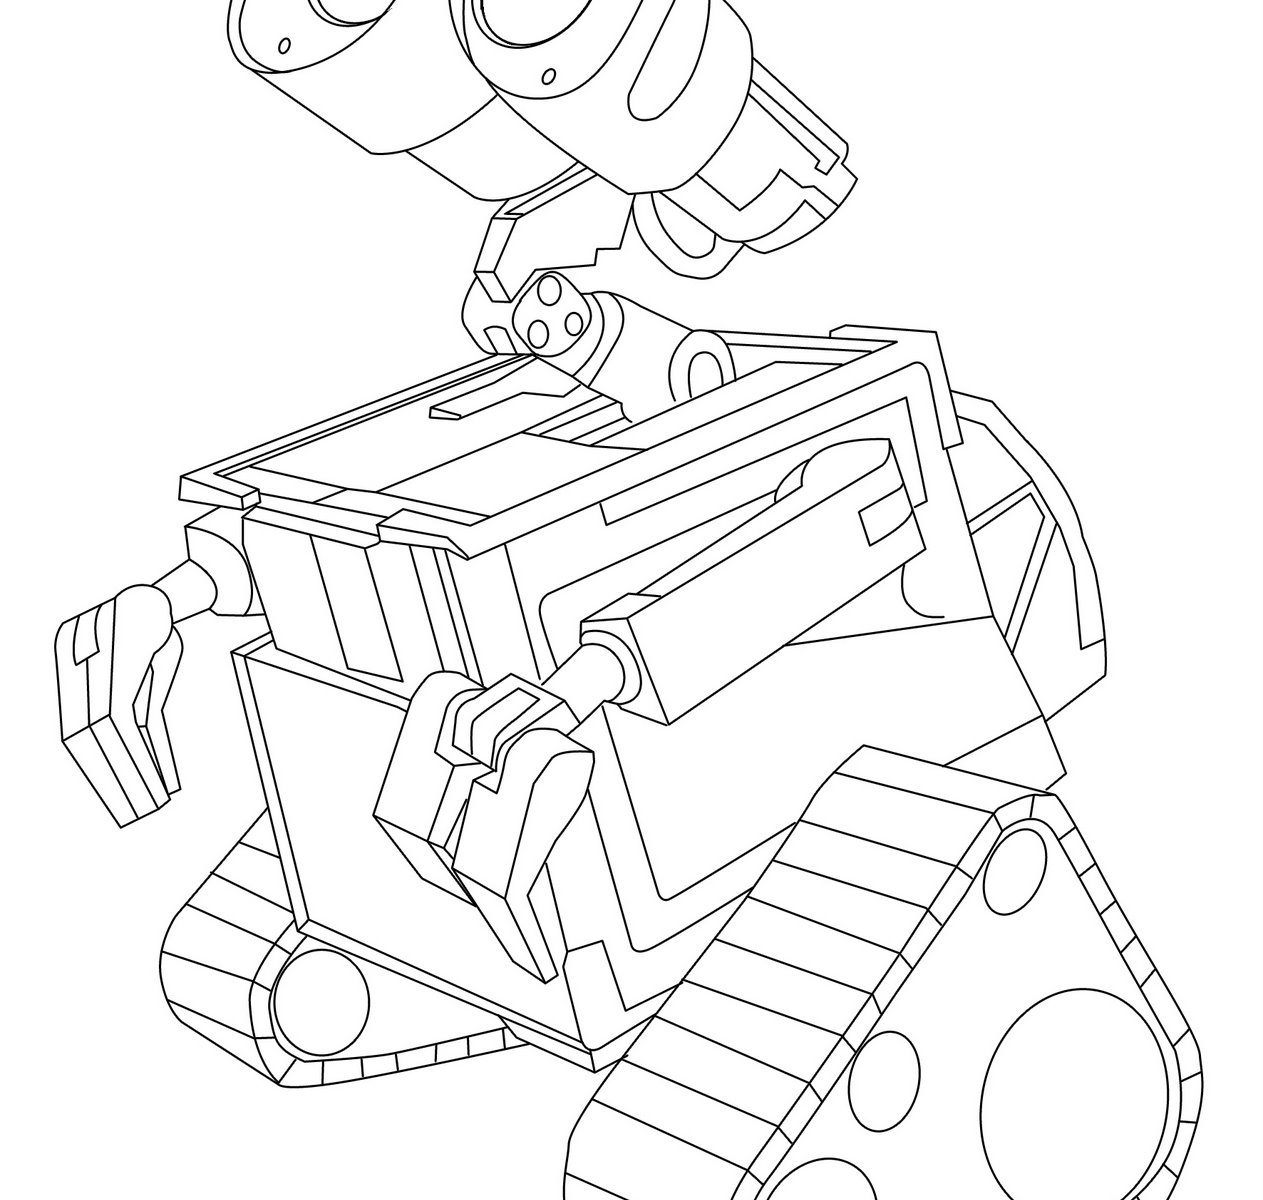 1263x1200 Wall E Coloring Pages For Free Printable General Wall E High